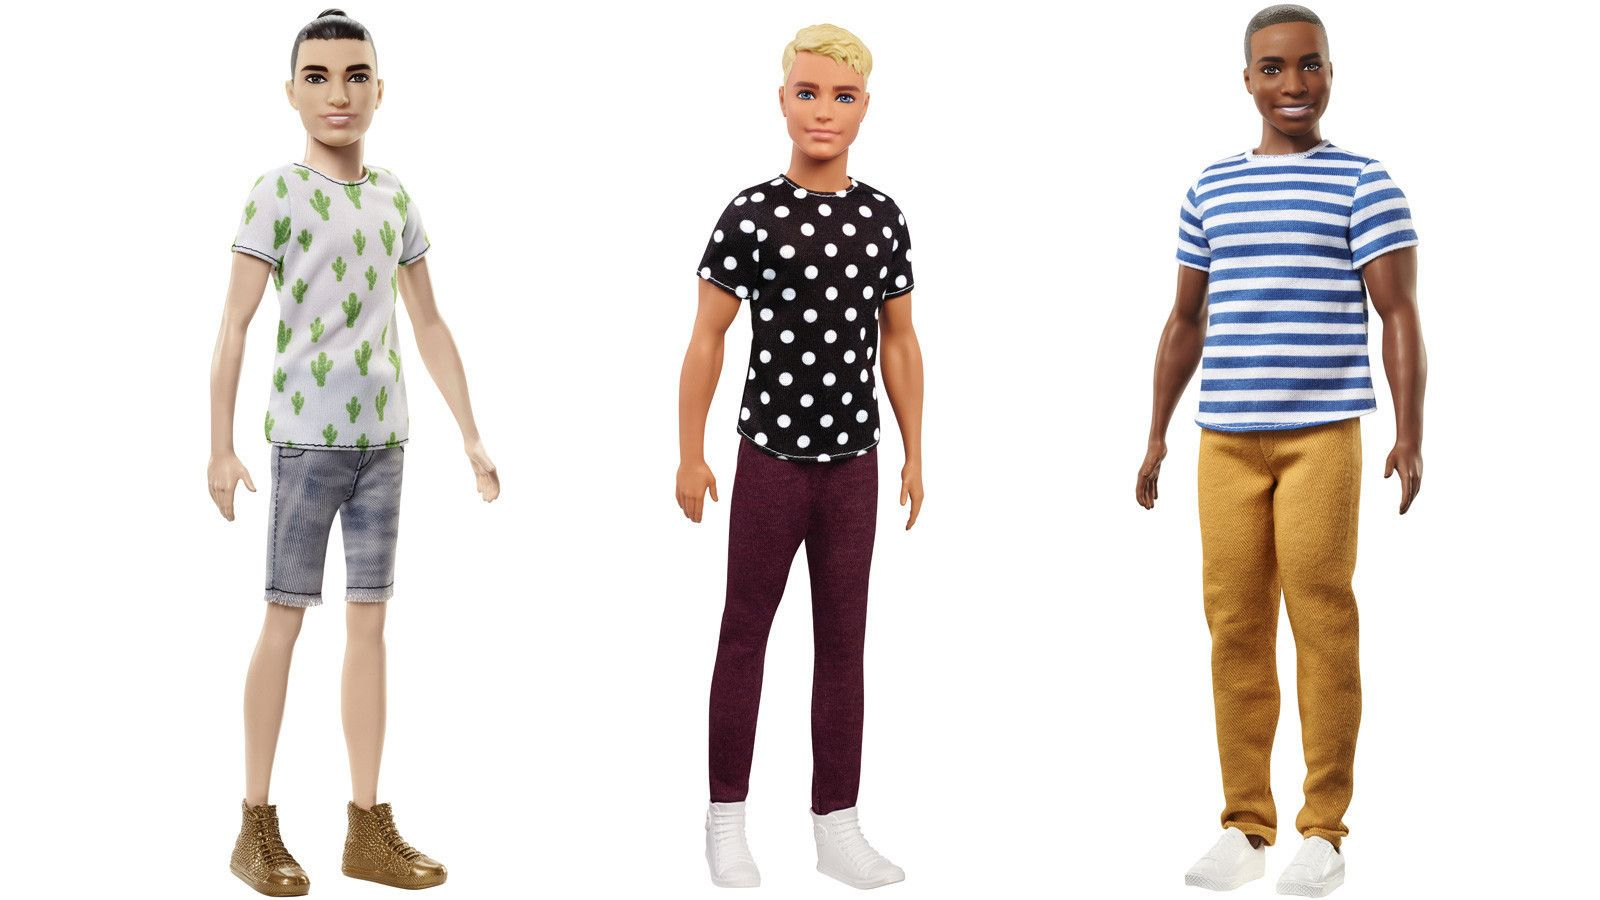 Barbie, are you ready for man-bun or Dad-bod Ken?